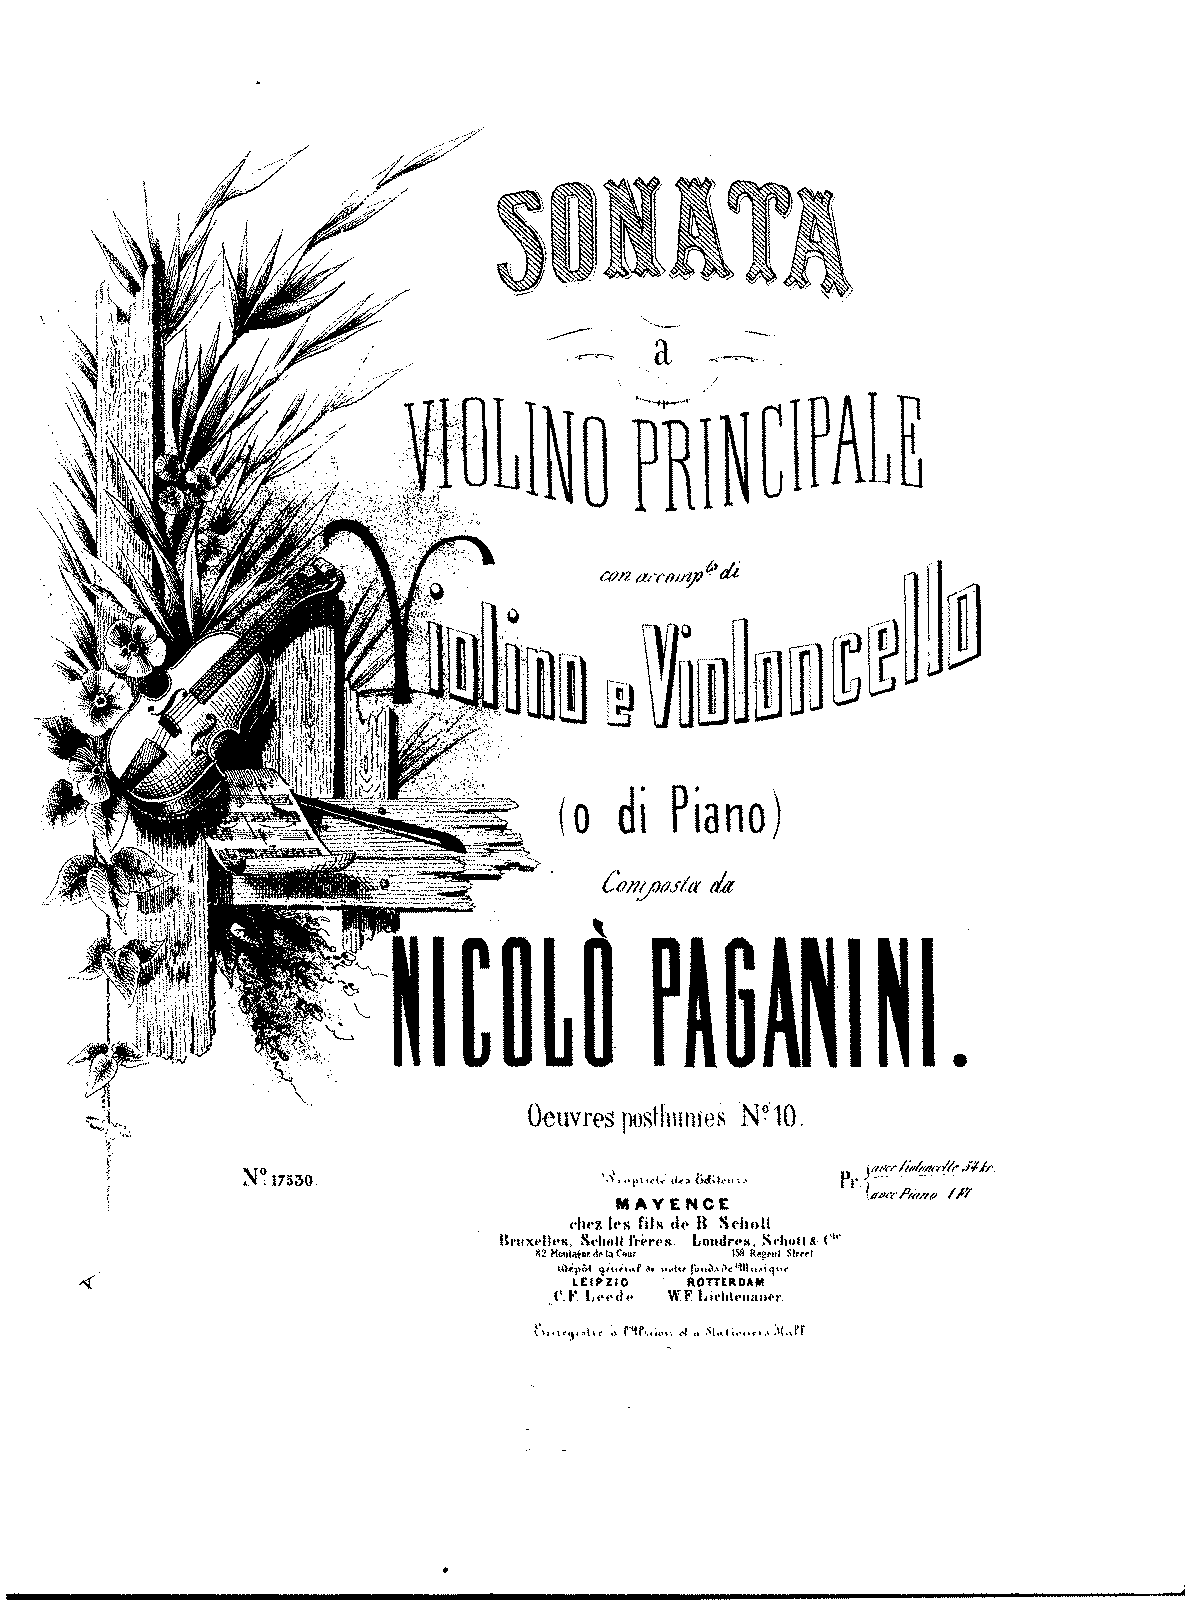 PMLP189769-Paganini - Sonata for Violin principal accom by violin and cello (or piano) Op posthumes No10 violin1.pdf